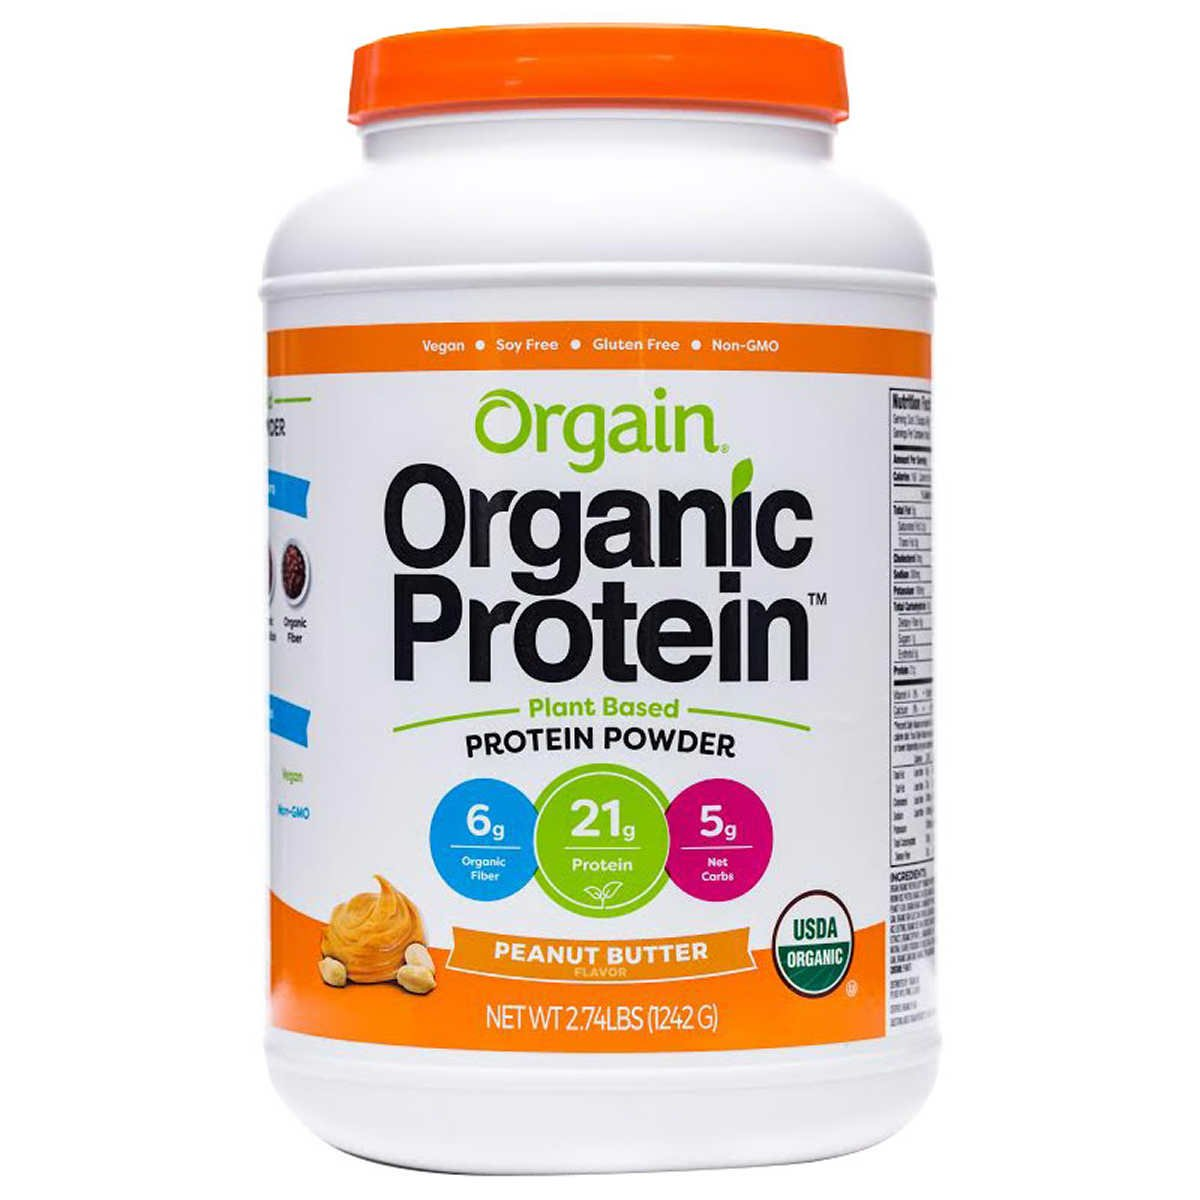 Orgain Organic Plant Based Protein Powder, Peanut Butter, Vegan, Gluten Free, Kosher, Non-GMO, 2.74 Pound, Packaging May Vary by Orgain